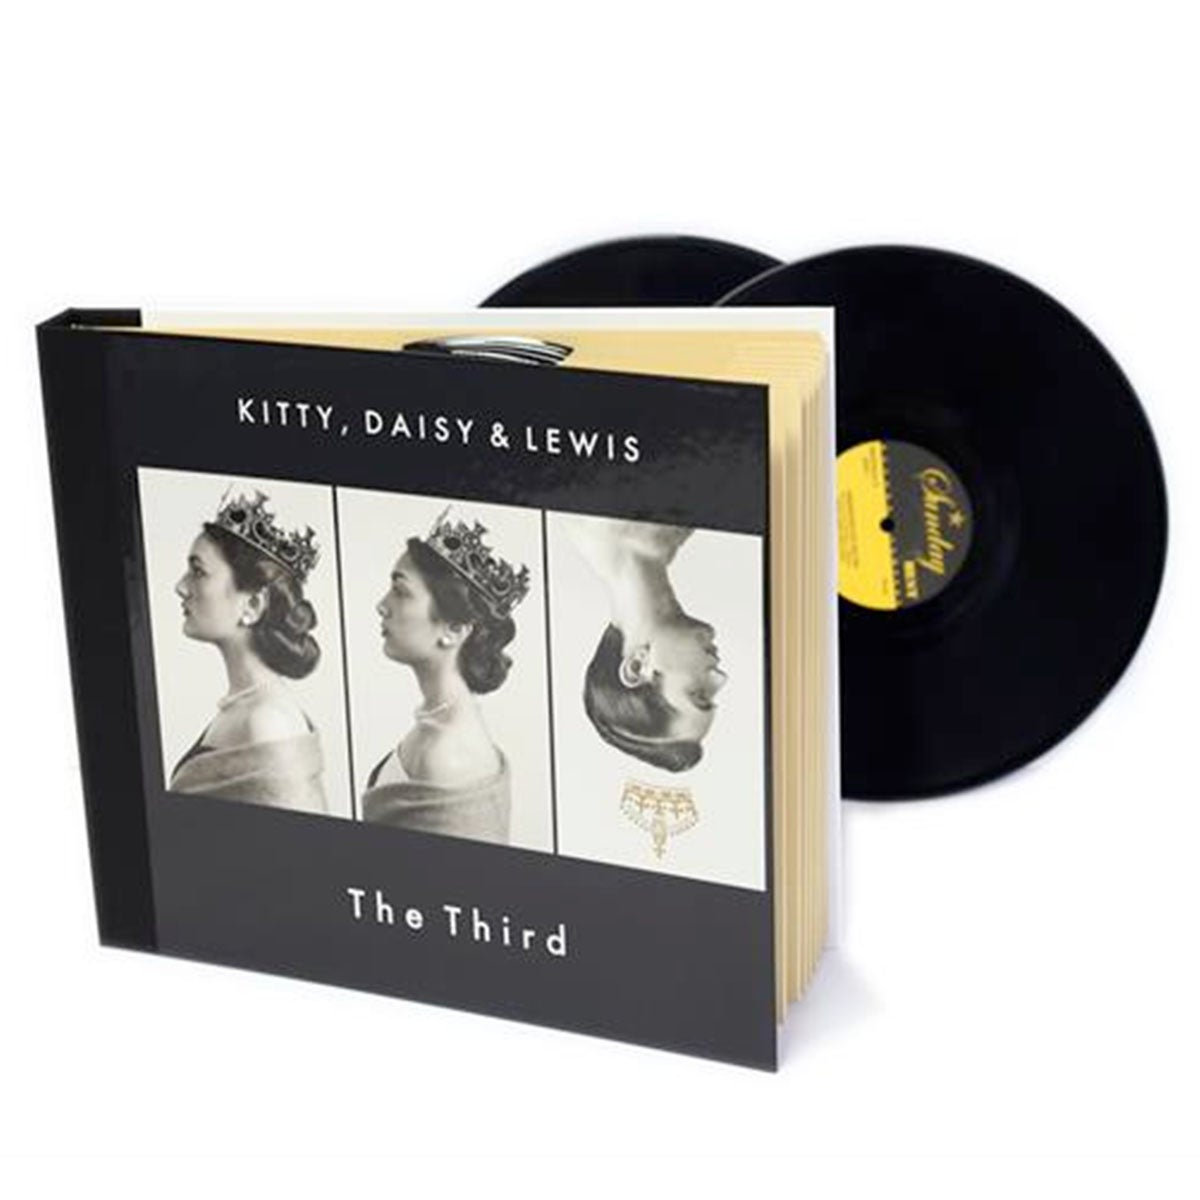 "Image of Kitty, Daisy and Lewis - The Third (Limited Edition Authentic Record Album ft. seven 10"" Vinyl)"